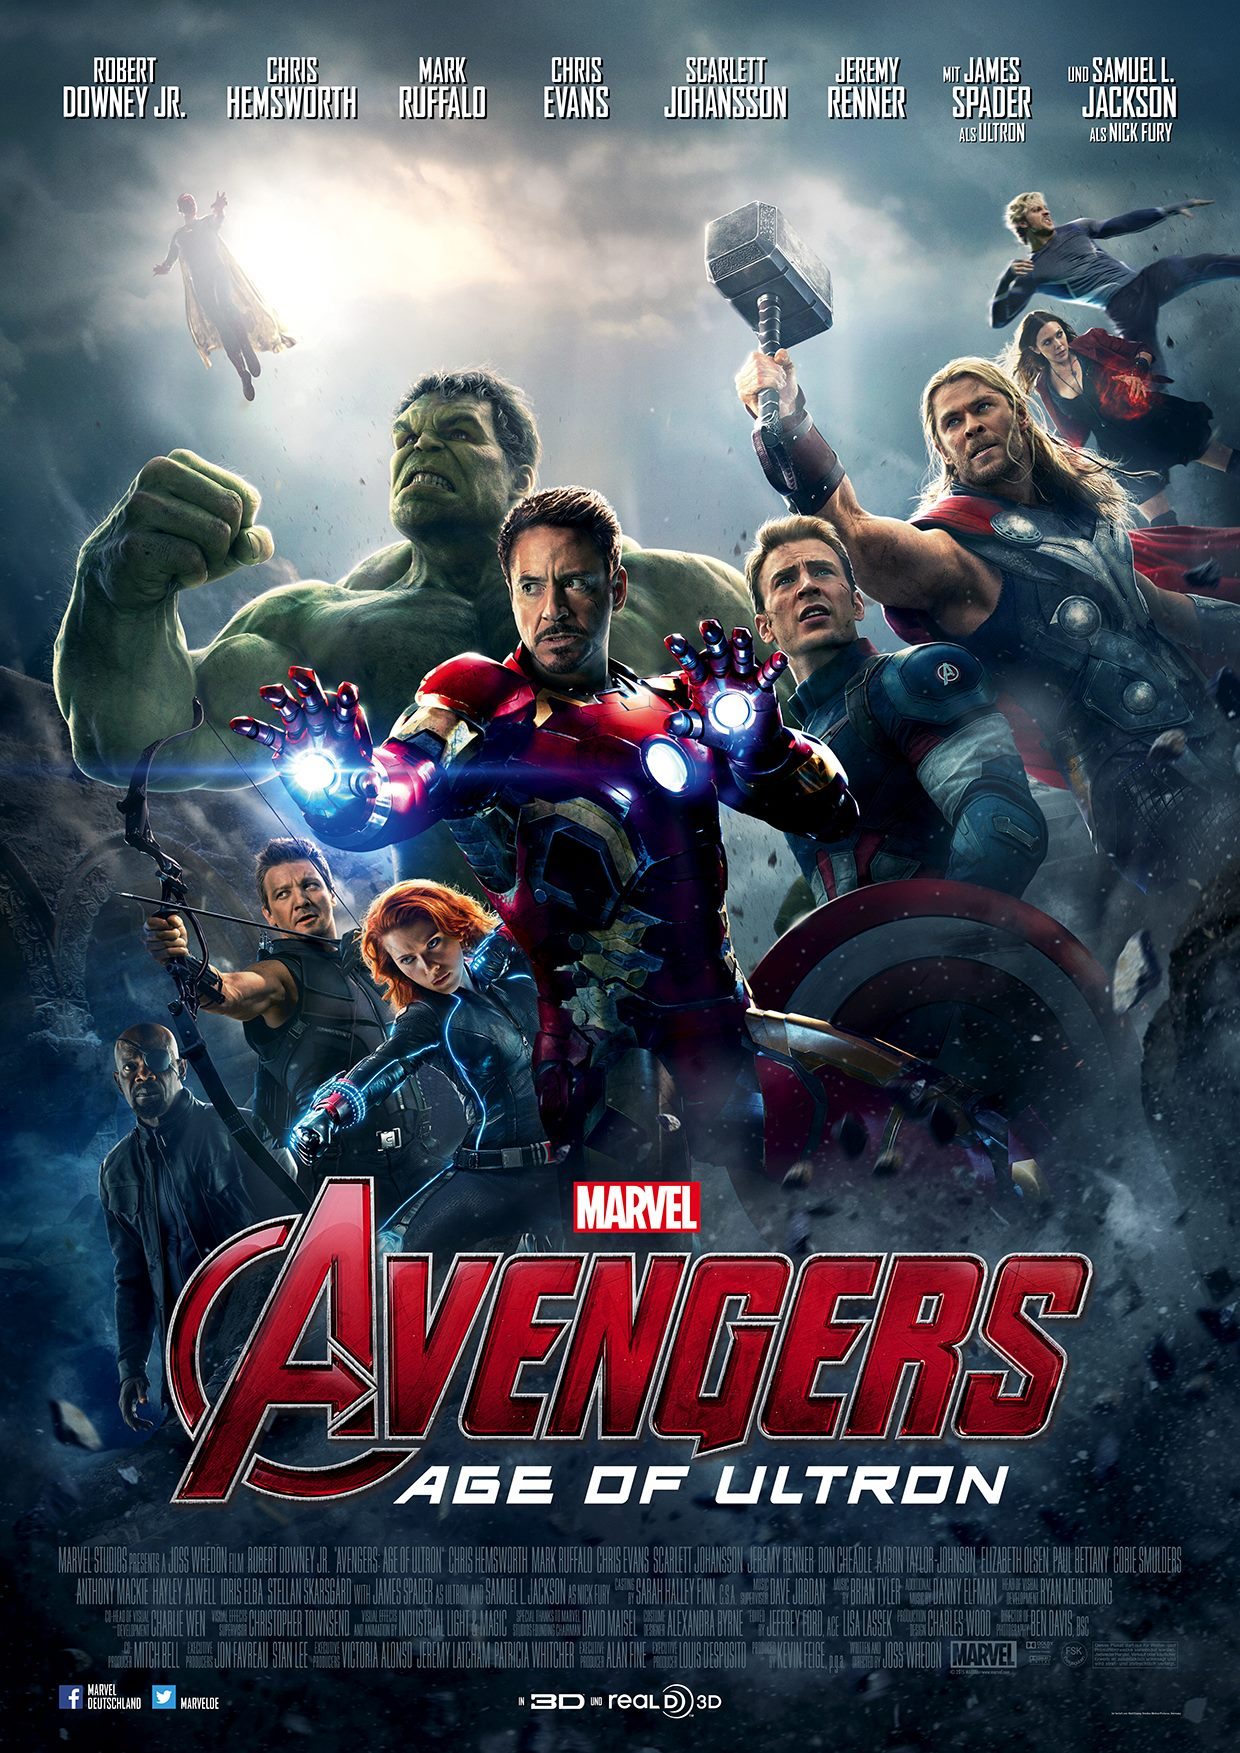 Avengers: Age of Ultron -2015 - ComingSoon.net